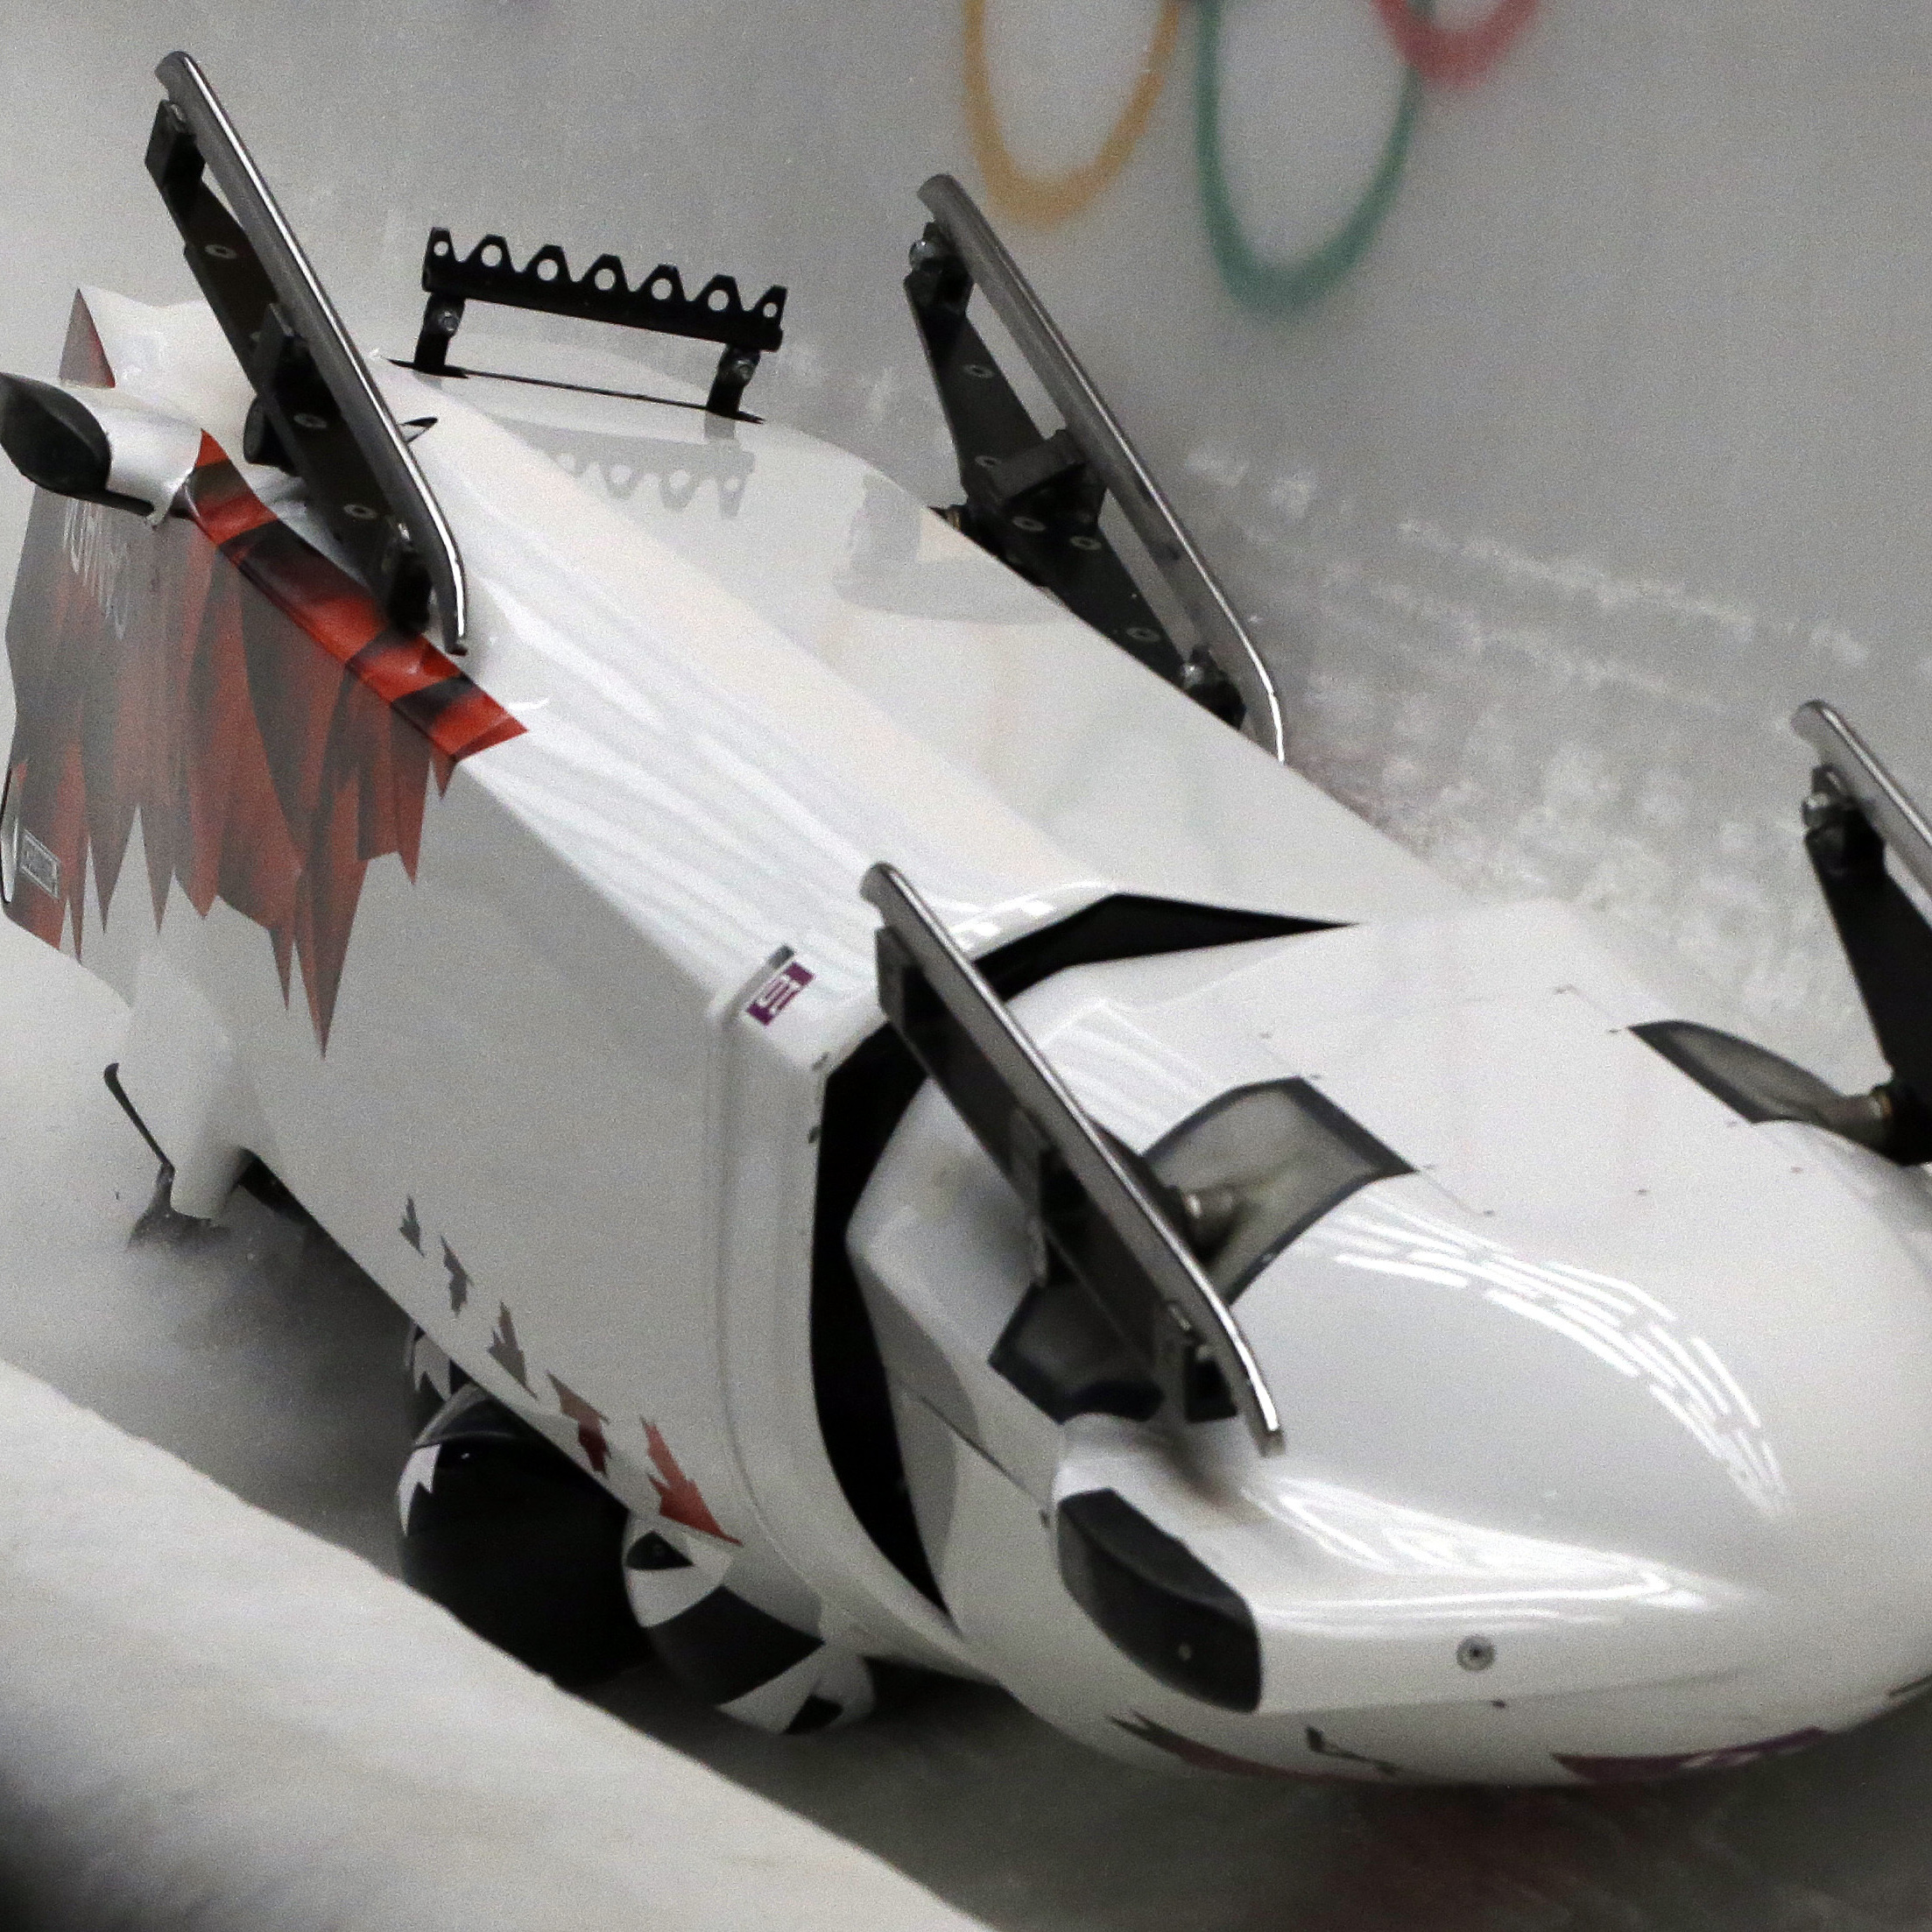 The team from Canada CAN-3, with Justin Kripps, Jesse Lumsden, Cody Sorensen and Ben Coakwell, slide down the track upside down after crashing in turn sixteen during the men's four-man bobsled competition at the 2014 Winter Olympics on Saturday.